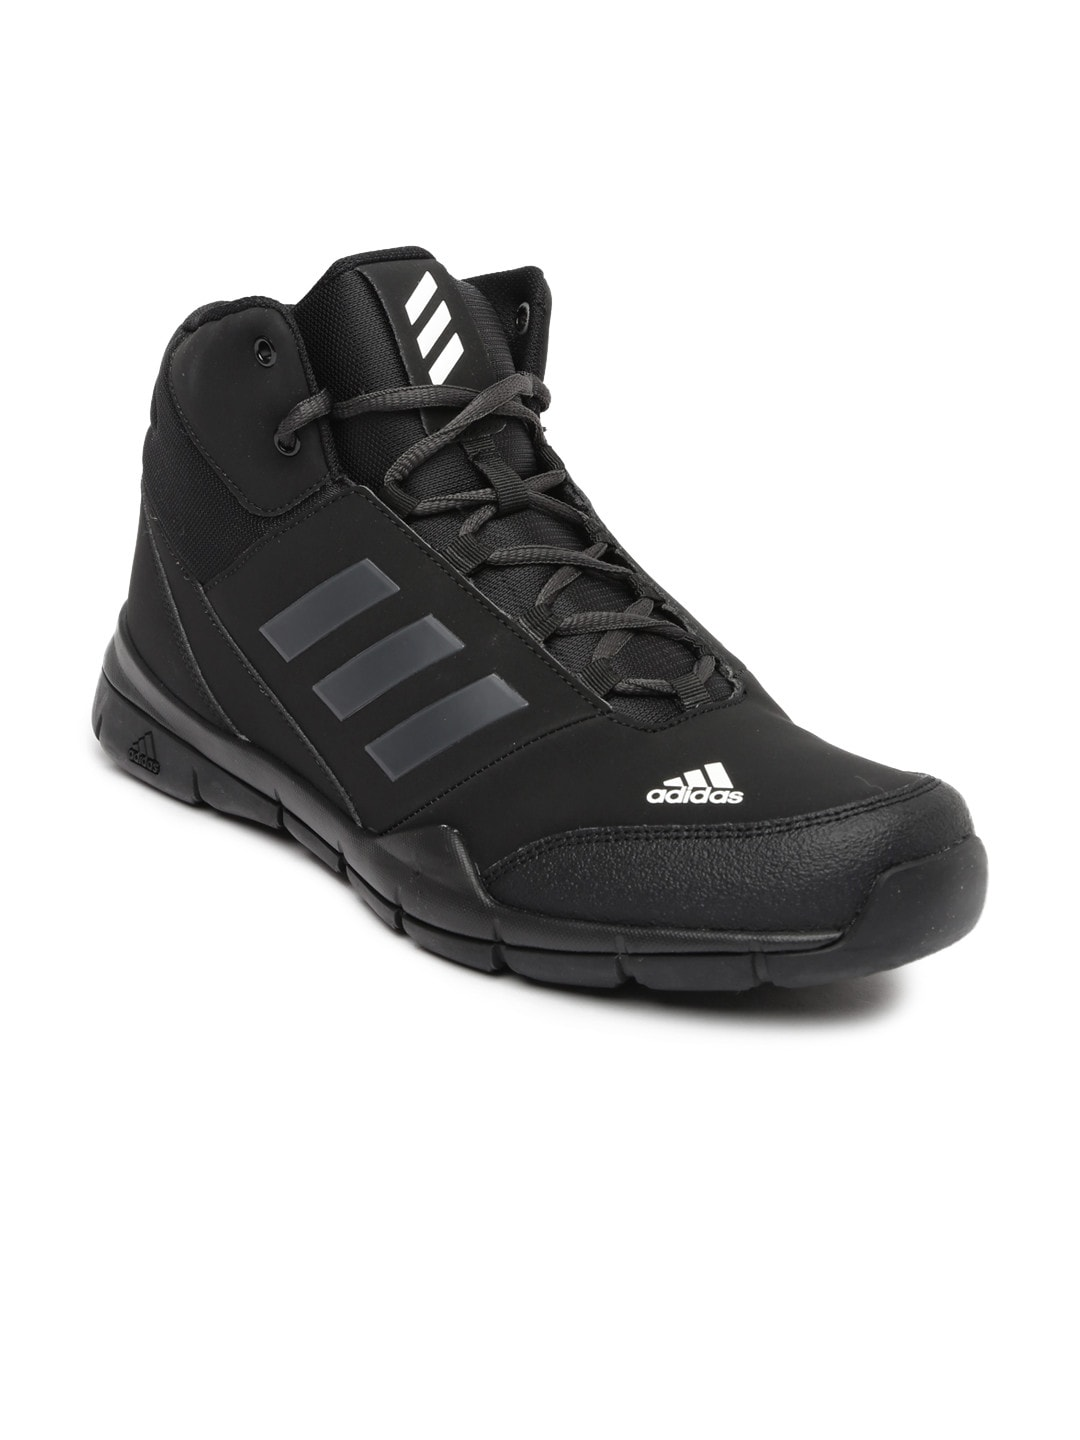 Adidas bi4915 Men Black Glissade Mid Leather Basketball Shoes- Price in  India 50af5e037